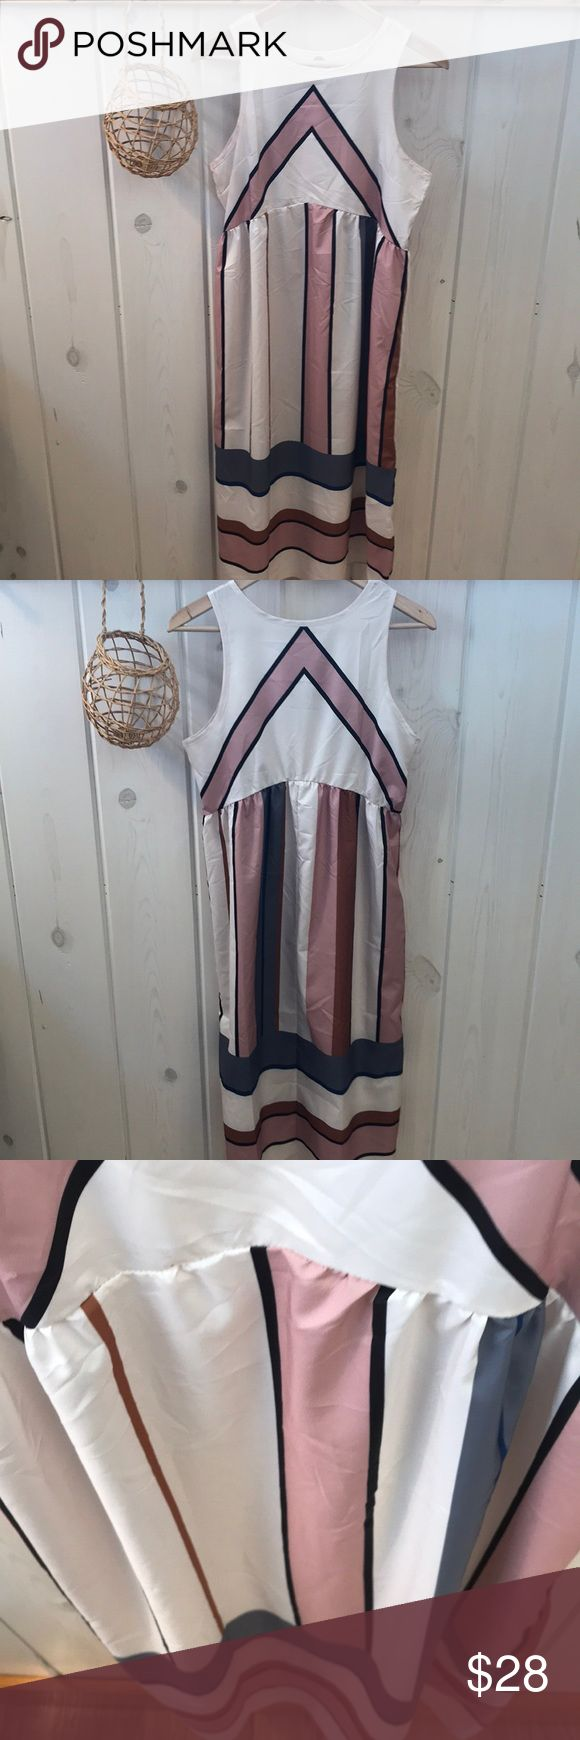 """Free People Bloom Dress Lookalike This dress has no brand or size but has a similar design to the Free People Bloom Dress that is impossible to find! It measures 18.25"""" pit-to-pit and 46.25"""" shoulder to bottom hem.  Has a flattering slight arc to waistline.  Would fit a small or medium, but probably not extra small.  Seems like a polyester material- it's flowy light and silky. Dresses Maxi"""